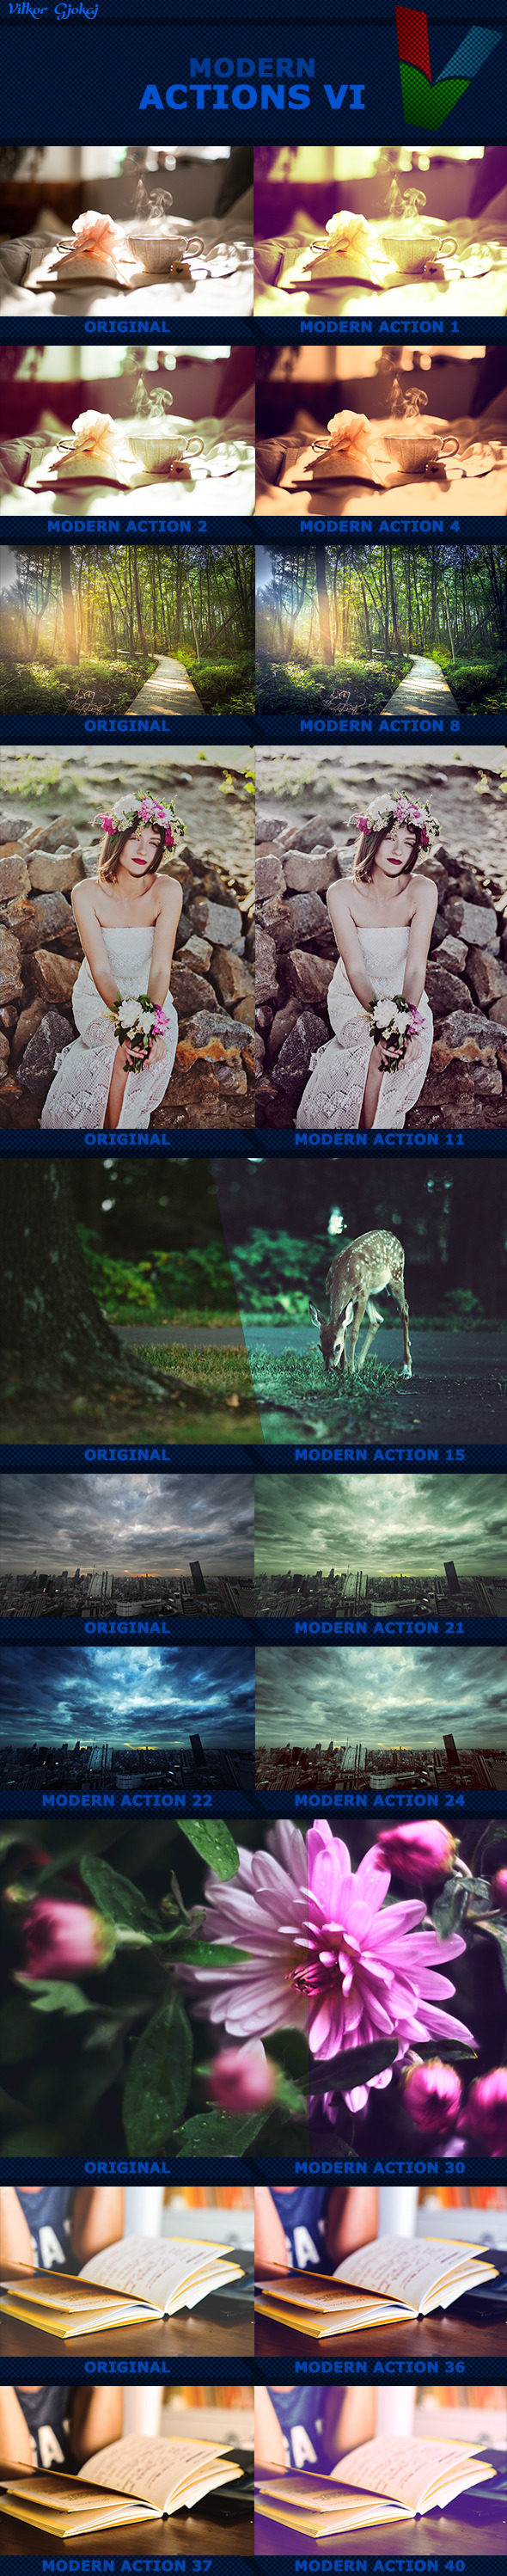 40 Modern Actions VI - Photo Effects Actions